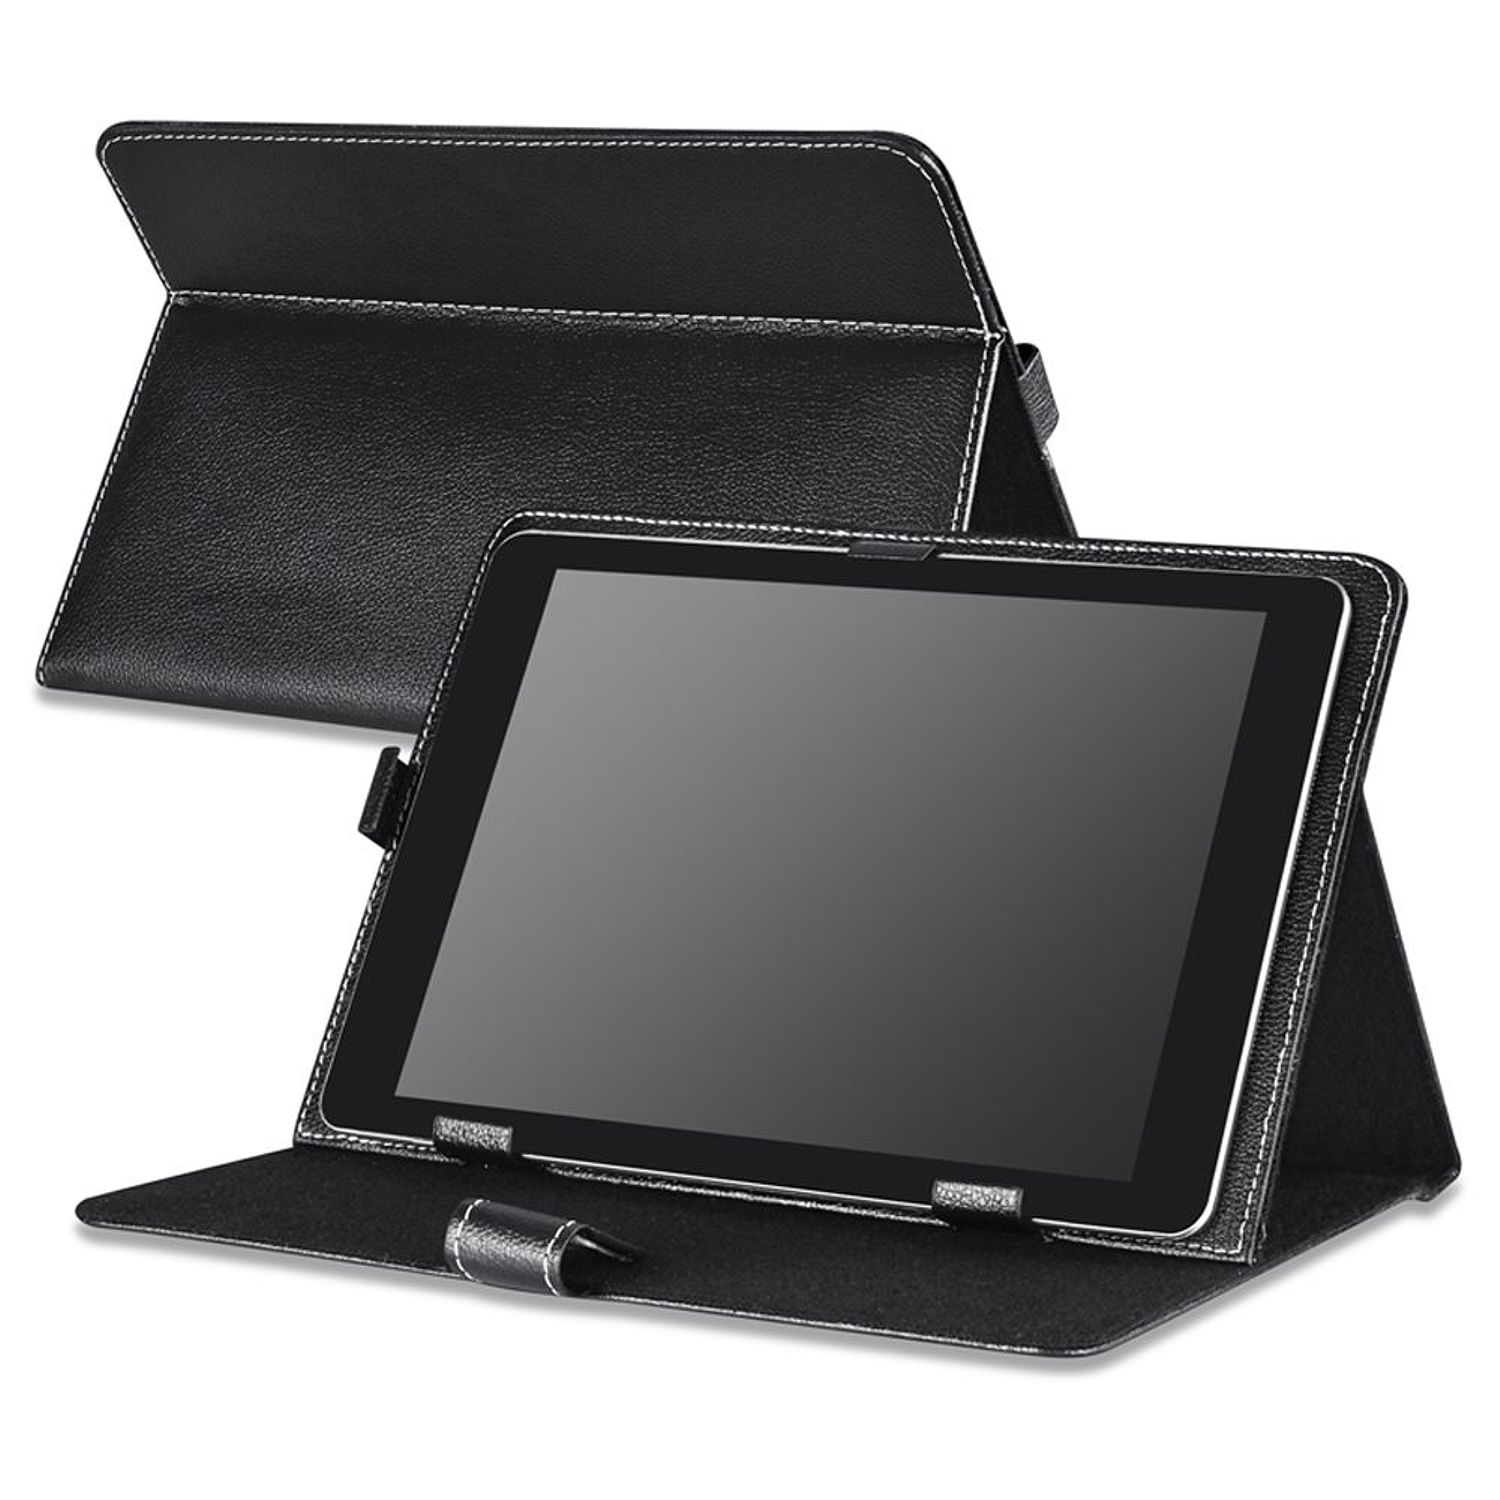 Insten 10-Inch Universal Leather Case For RCA 10 Viking Pro Pro10 / Visual Land Prestige Elite 10QS Prime 10E / Ematic Genesis Prime XL eGlide XL Pro II Tablet